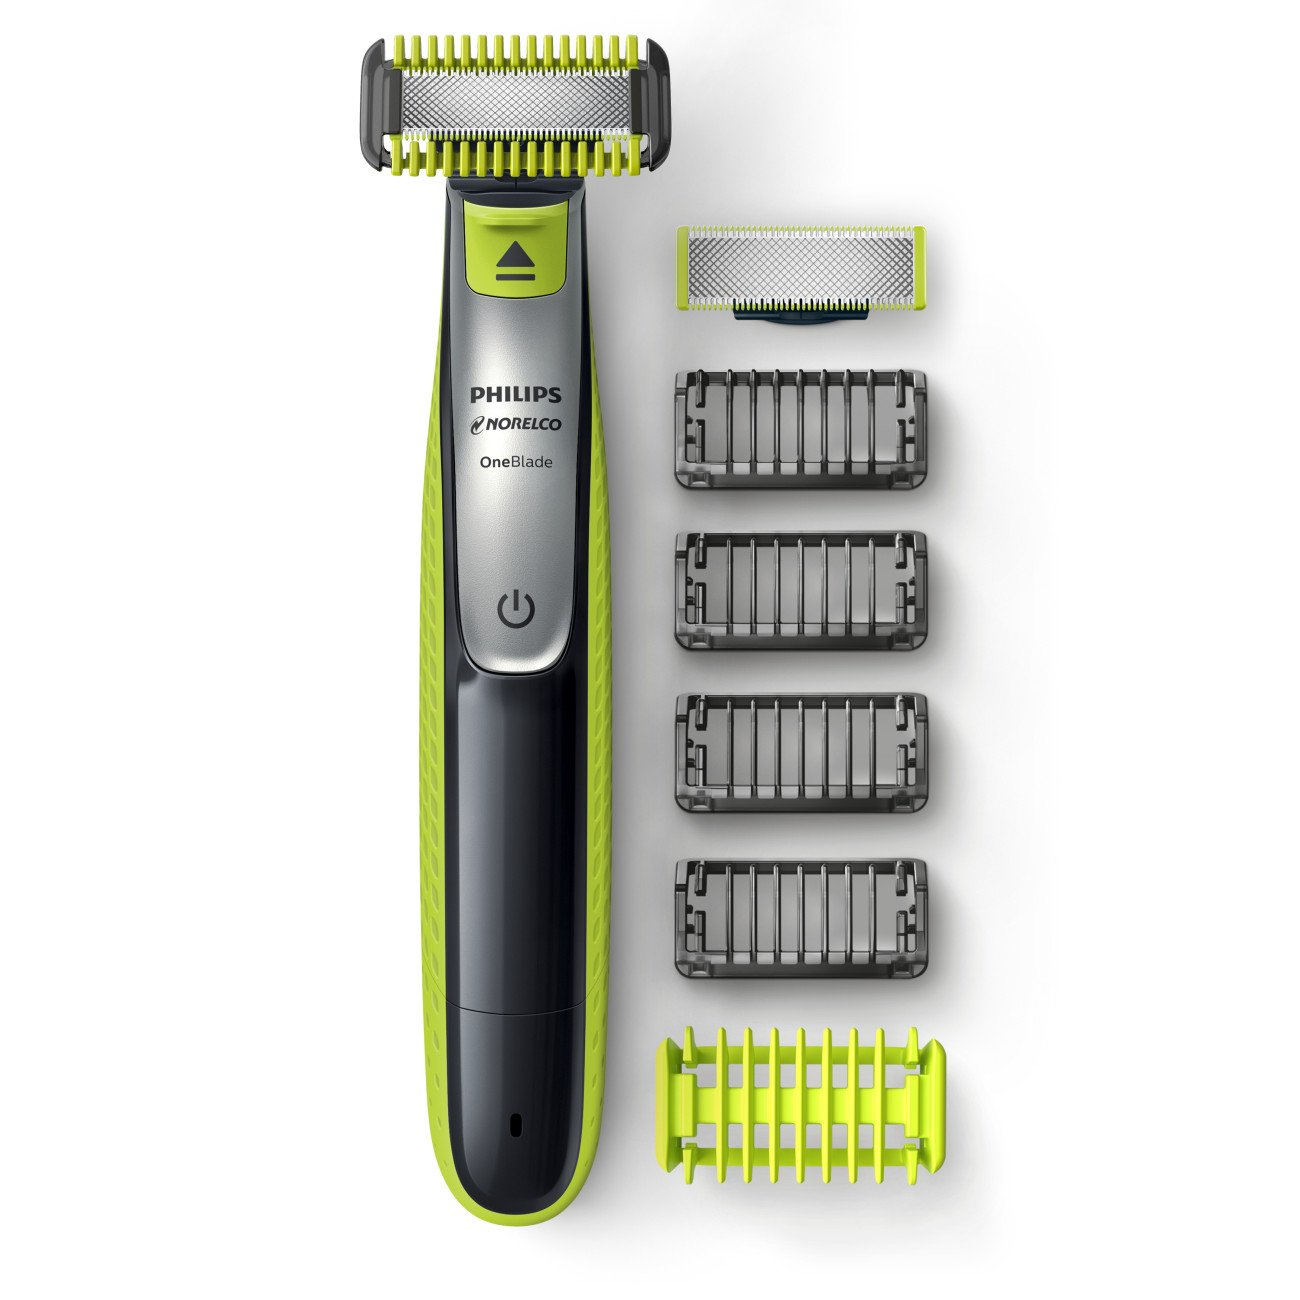 Philips Norelco OneBlade Face + Body Hybrid Electric Trimmer and Shaver, best body groomers